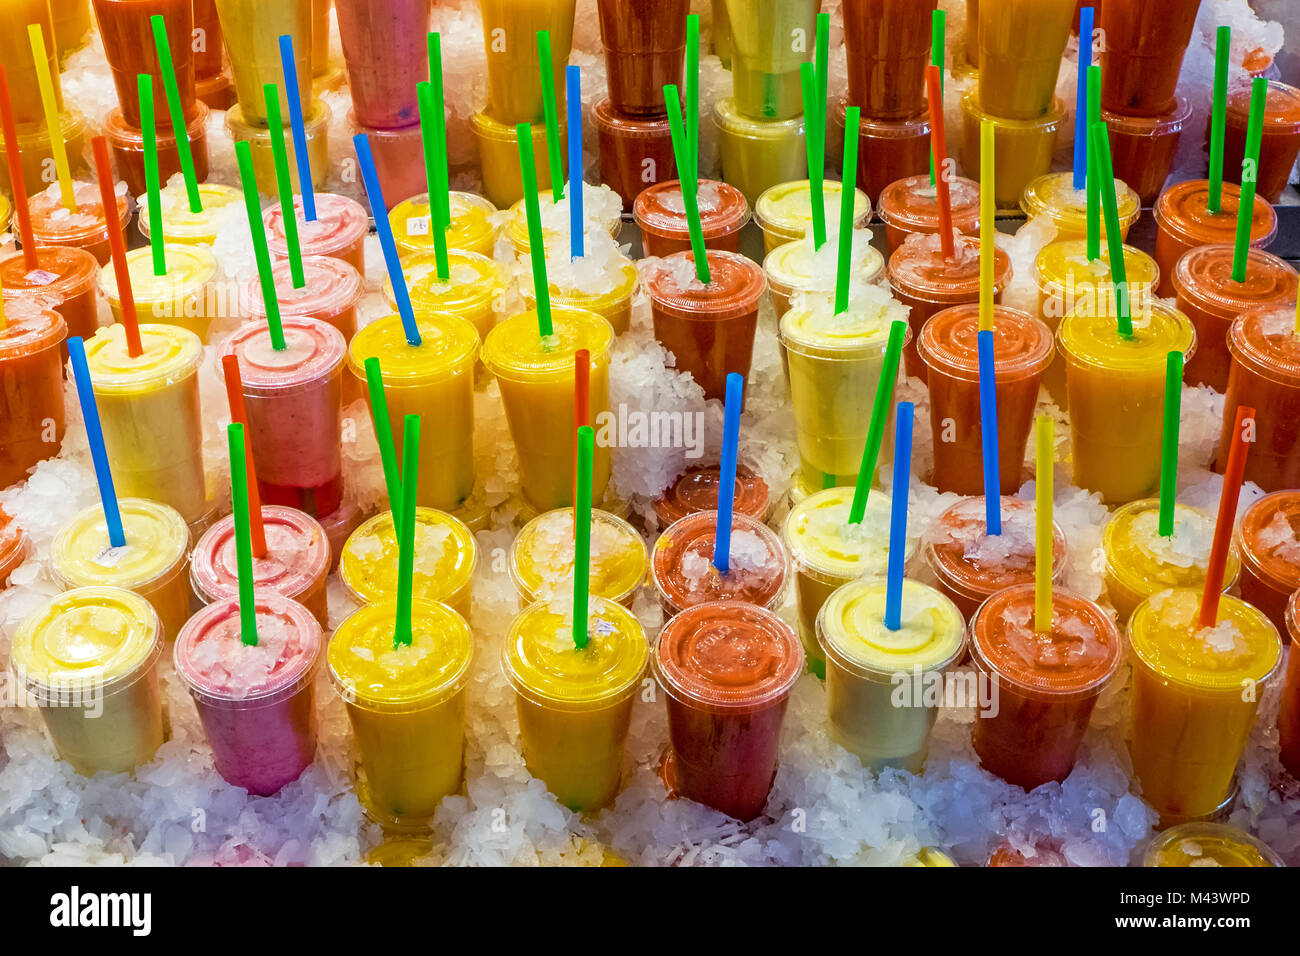 Tasty fruit smoothies at a market - Stock Image